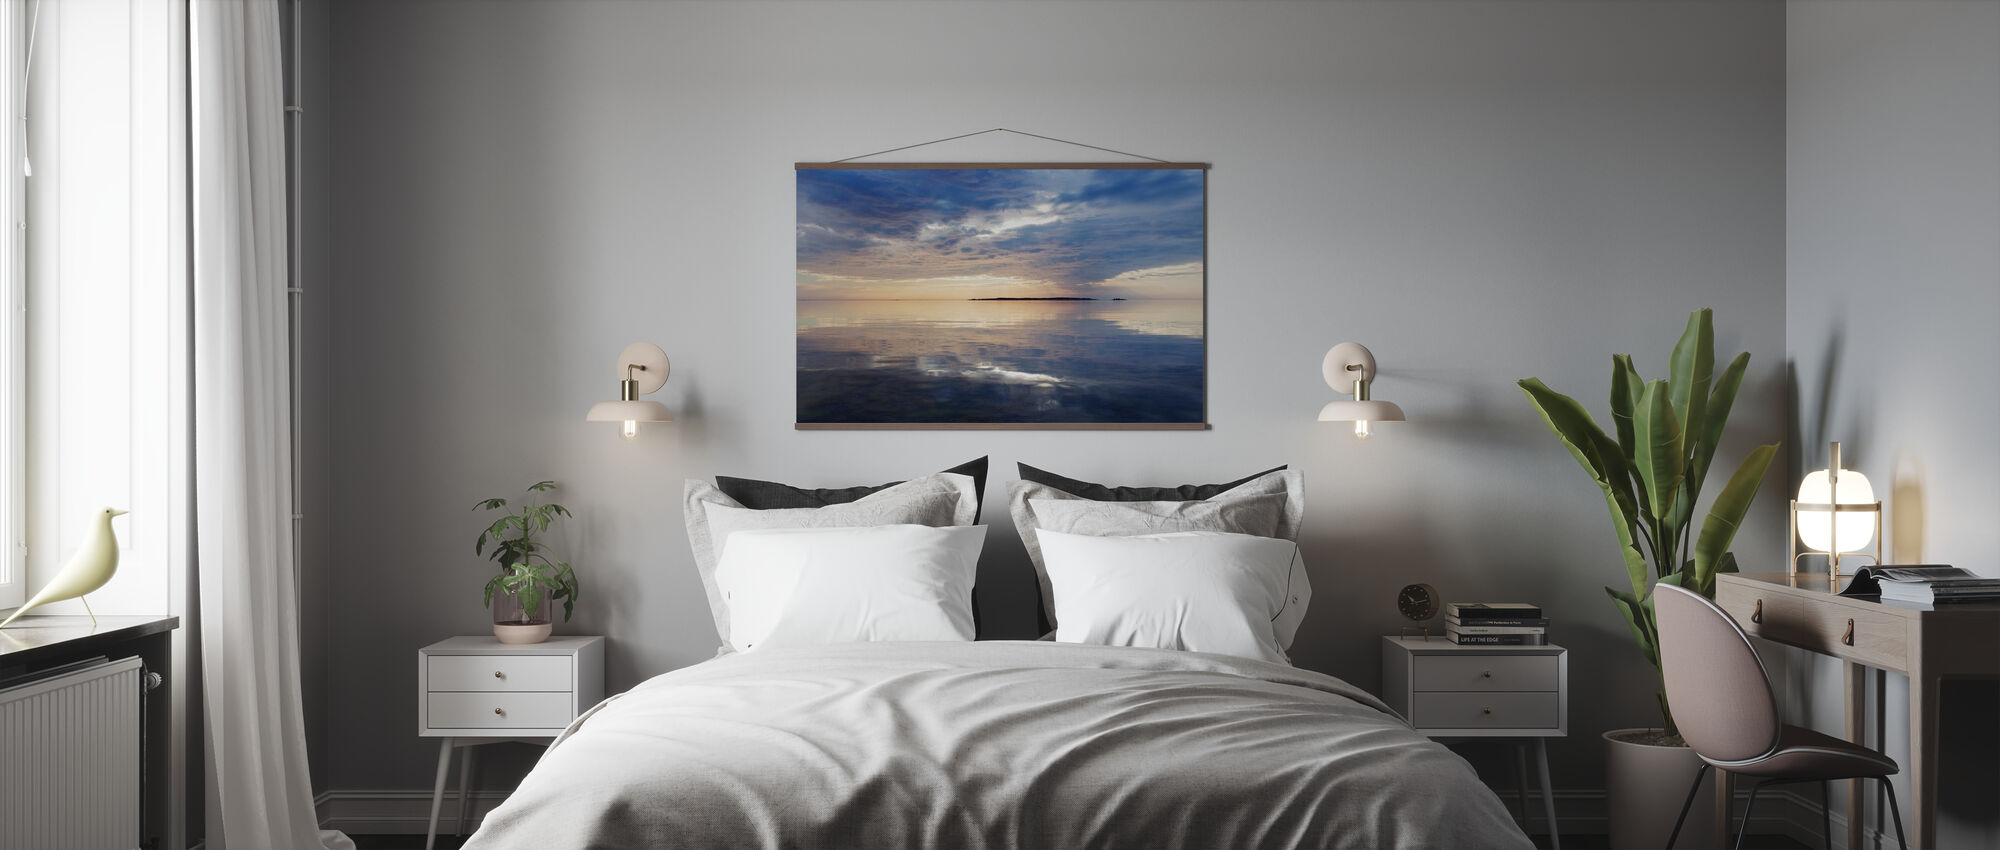 Sky Mirrored in Baltic Sea - Poster - Bedroom